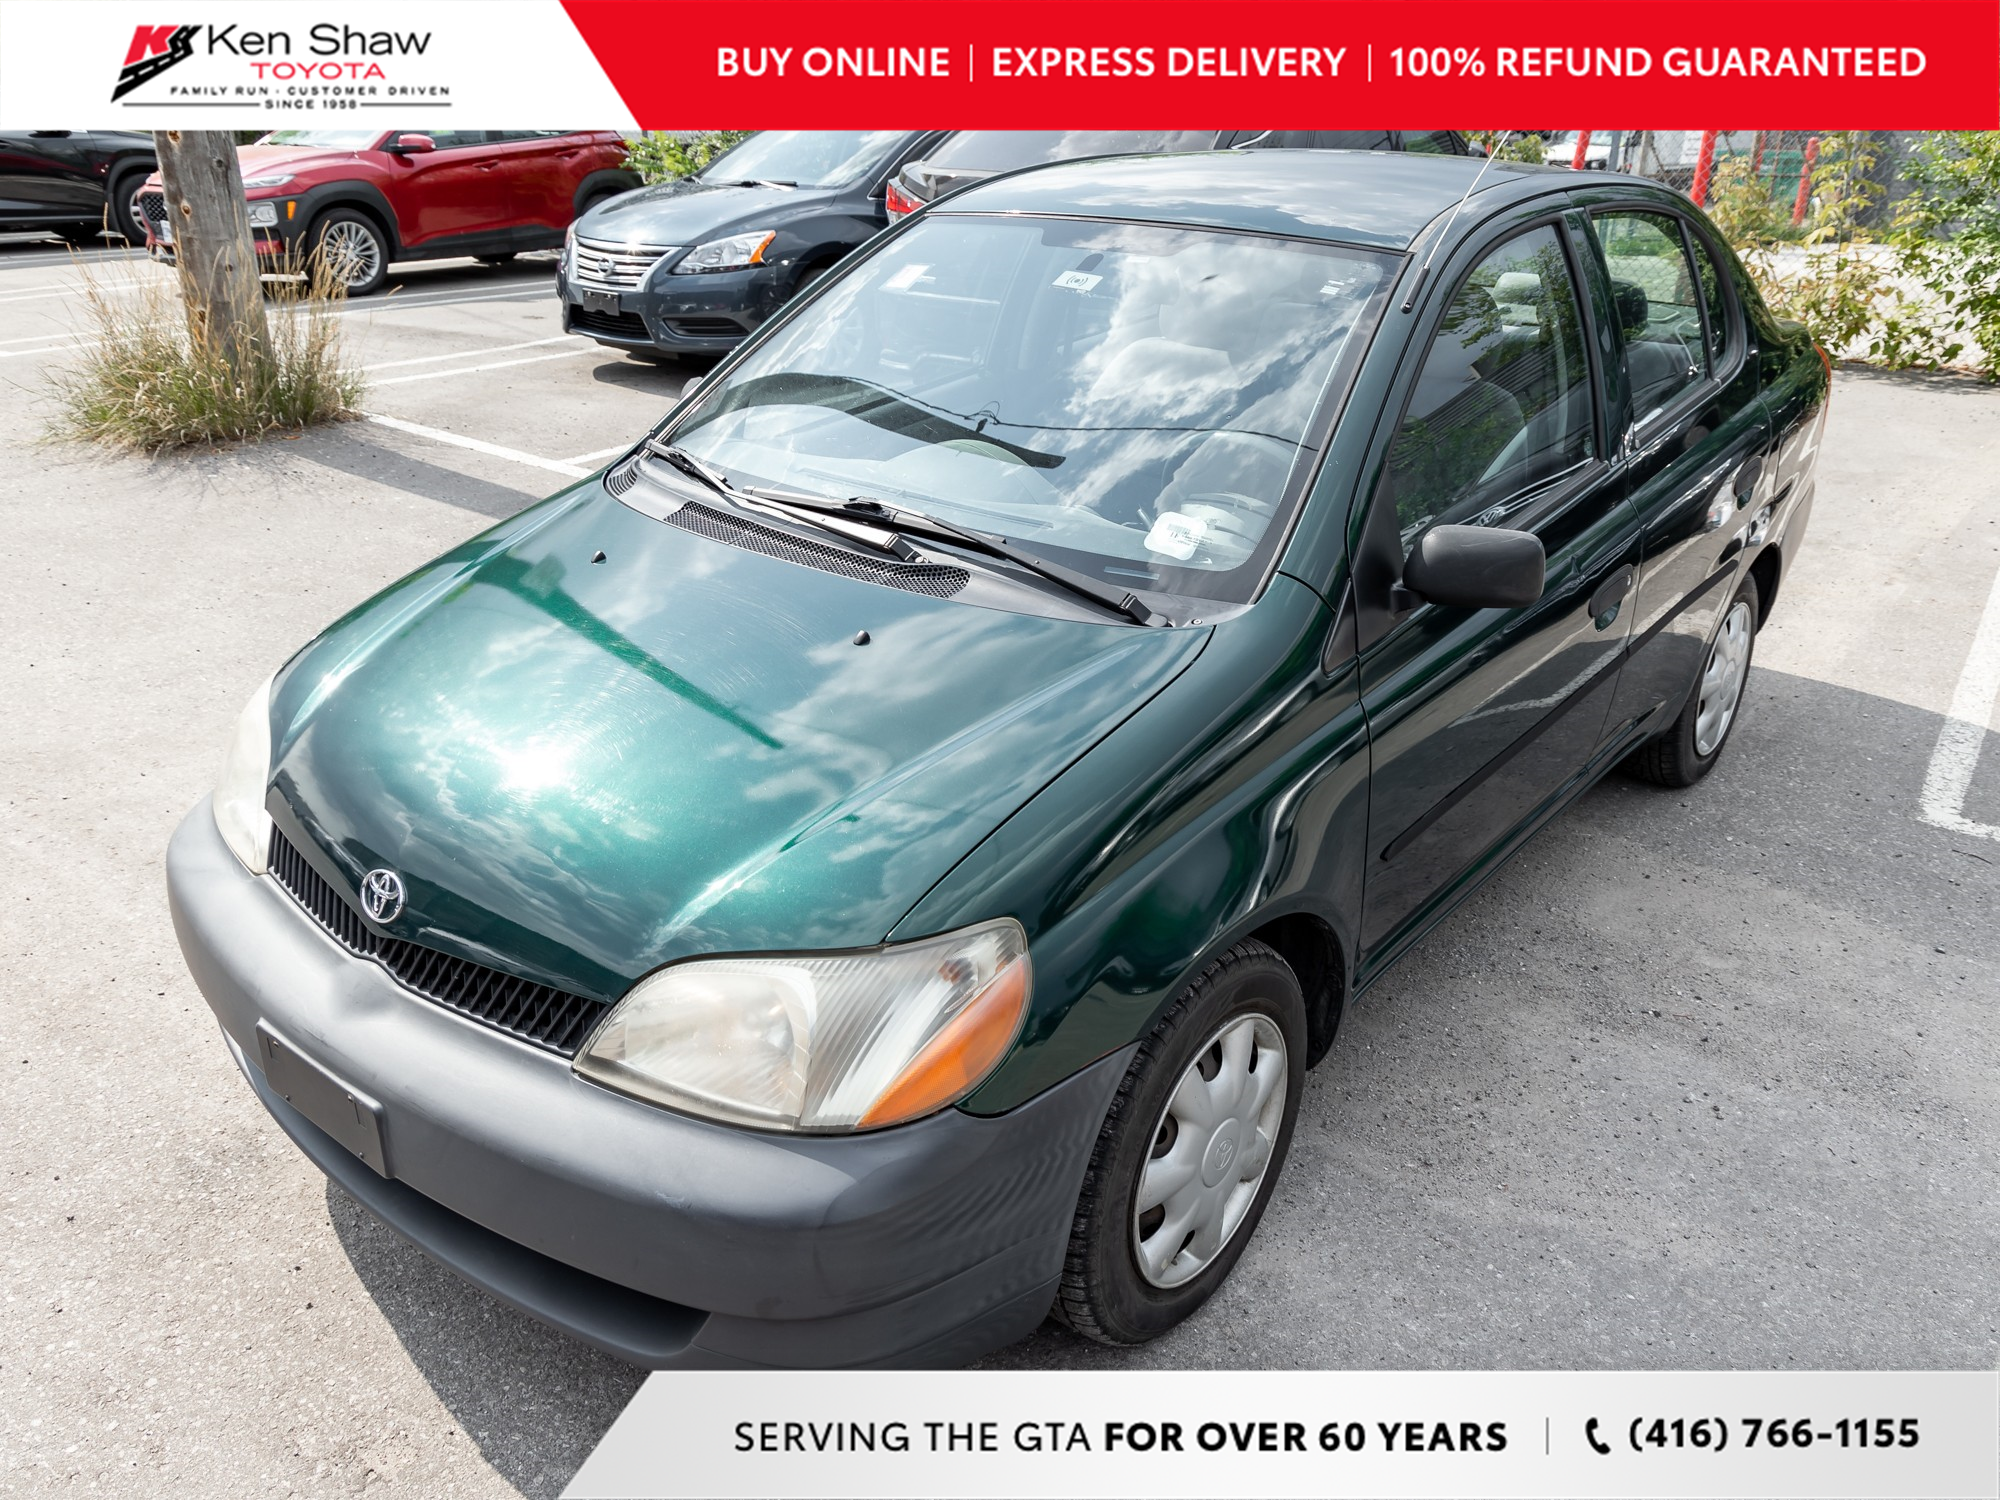 used 2002 Toyota ECHO car, priced at $1,695